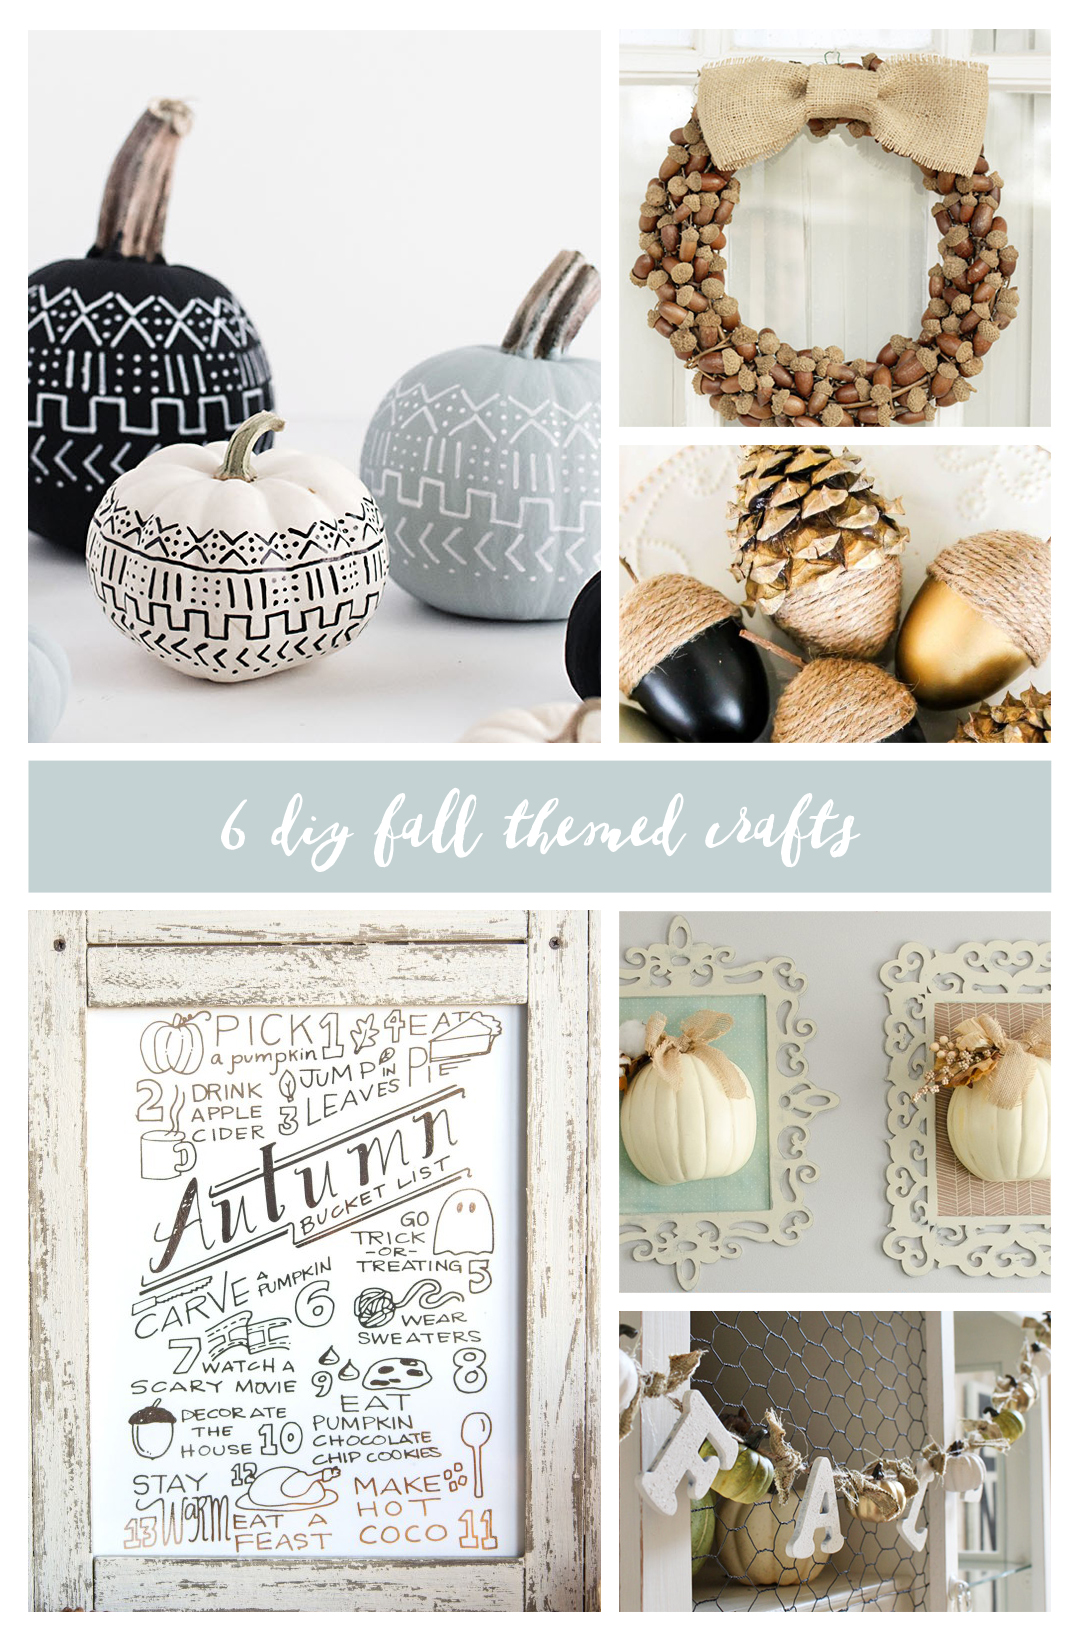 6 DIY Fall Themed Crafts